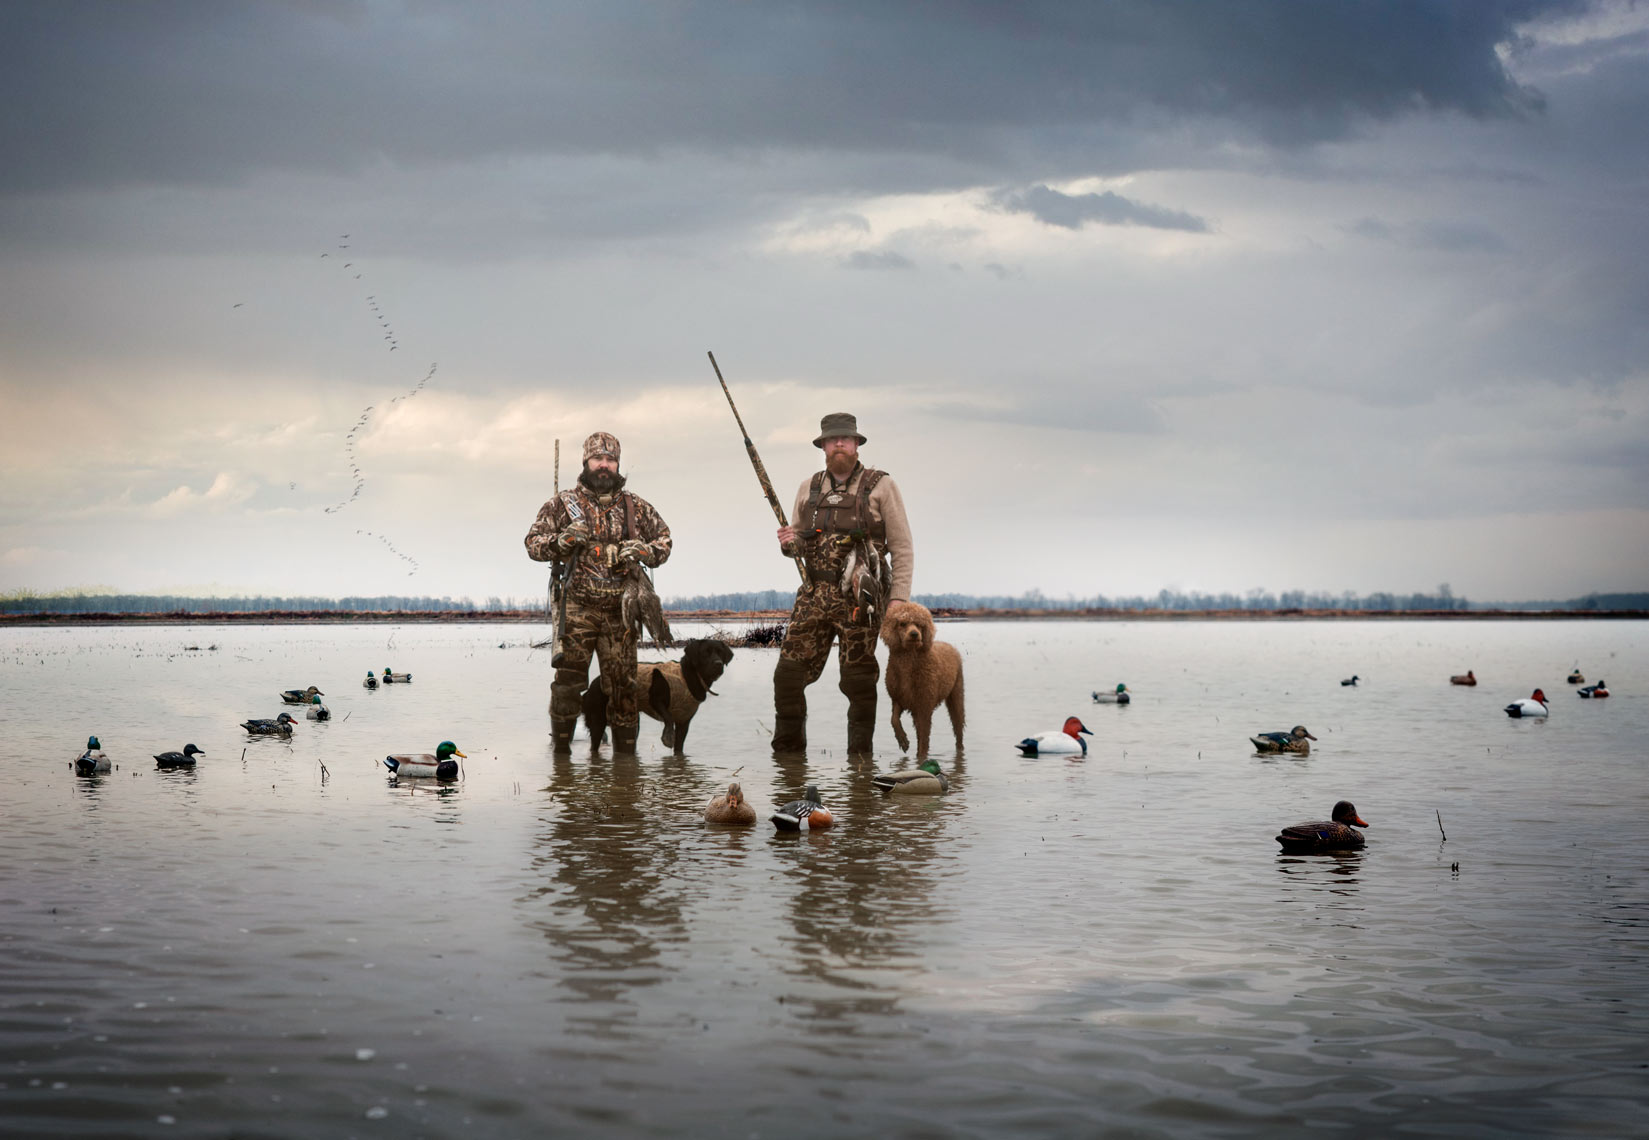 Jason Pittman and Erik Dean after an early AM duck hunt